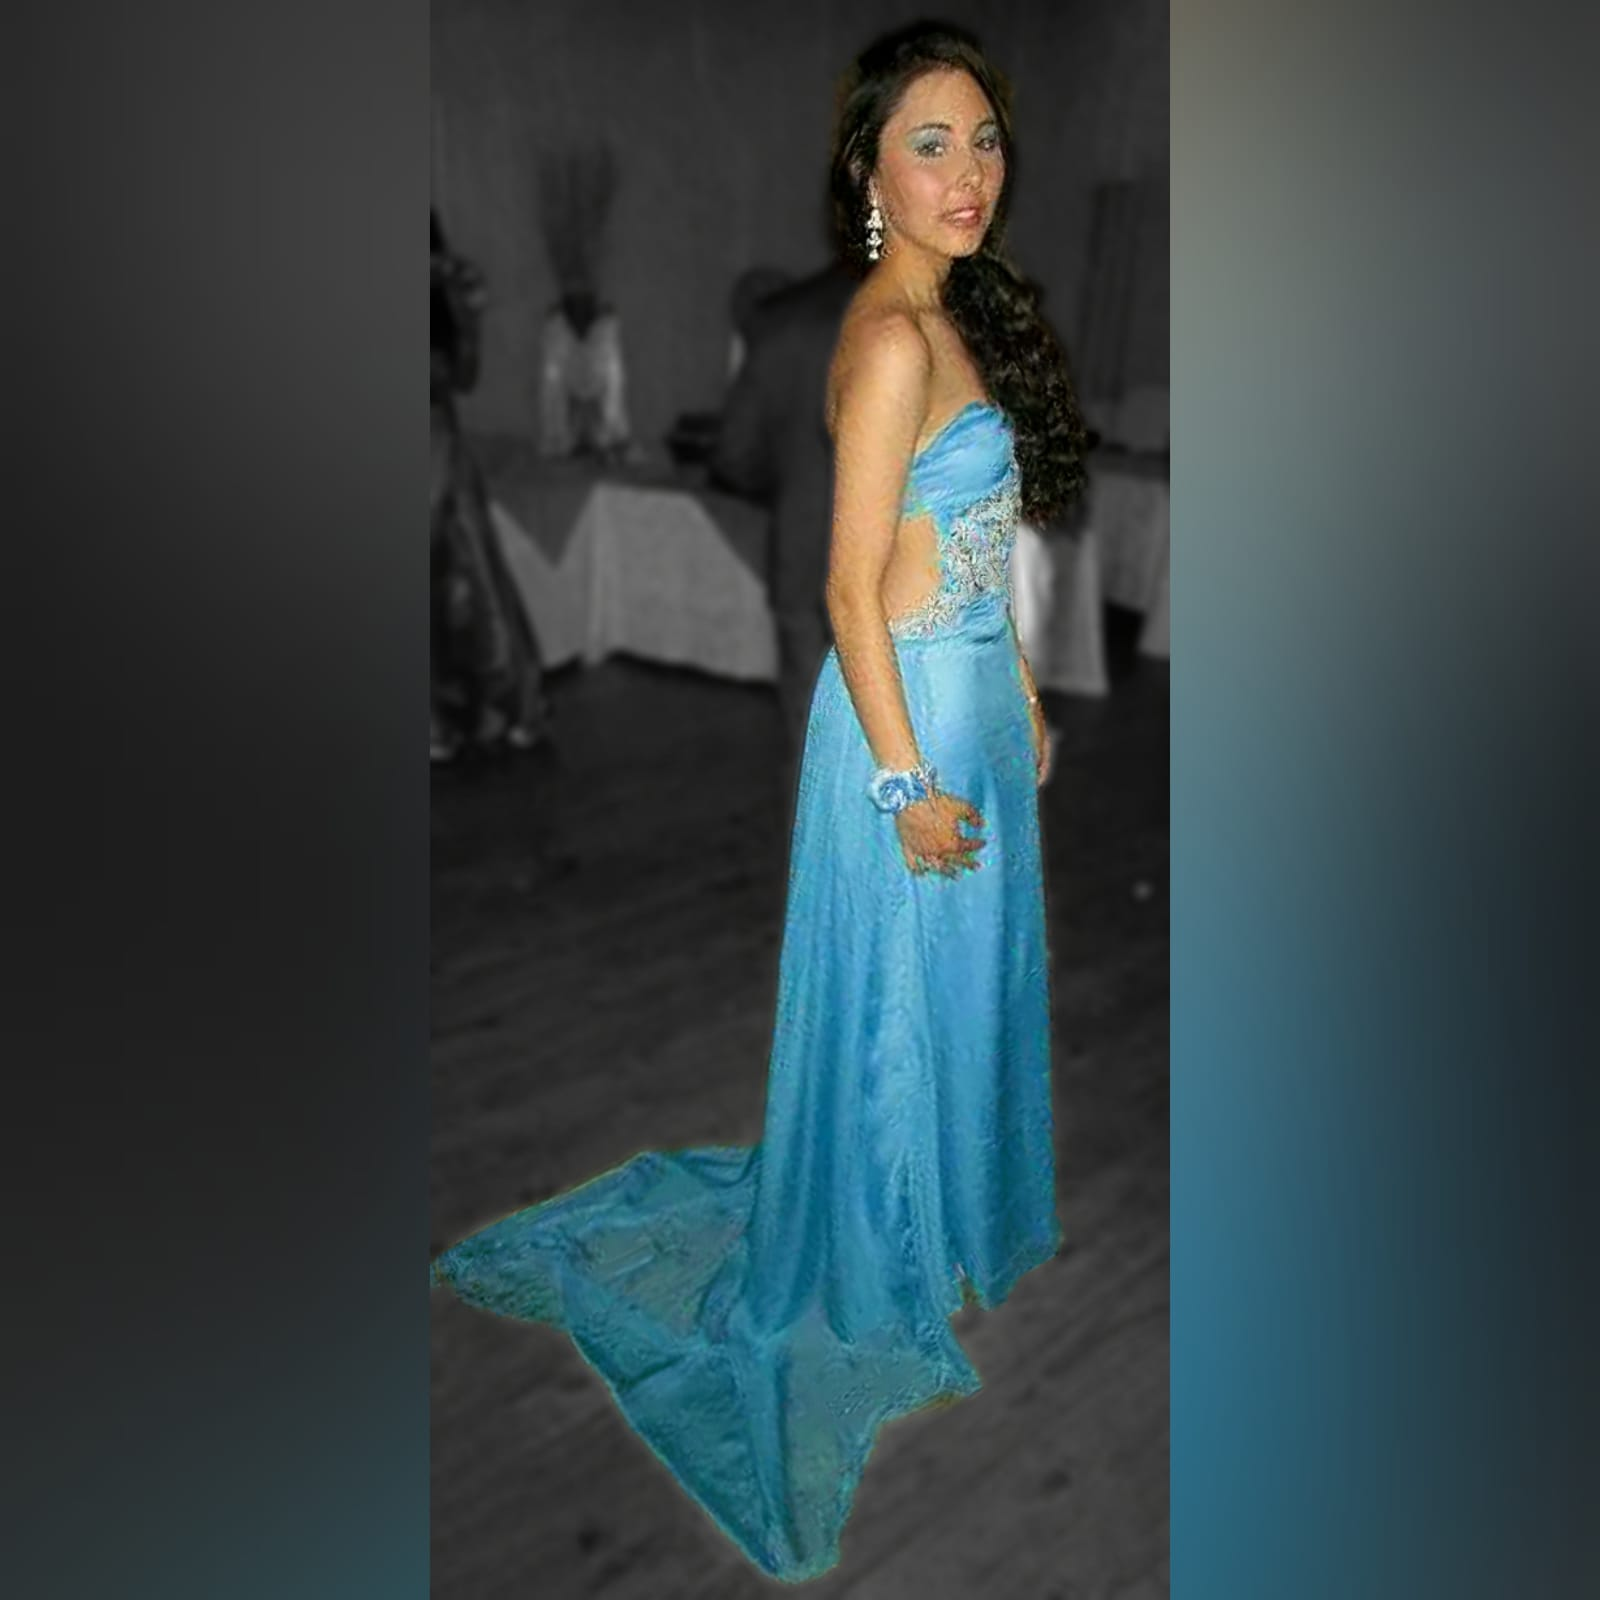 Sky blue chiffon long matric farewell dress 3 sky blue chiffon long matric farewell dress with side tummy opening and low open back. Detailed with silver embellishments. With gathered back chiffon train.